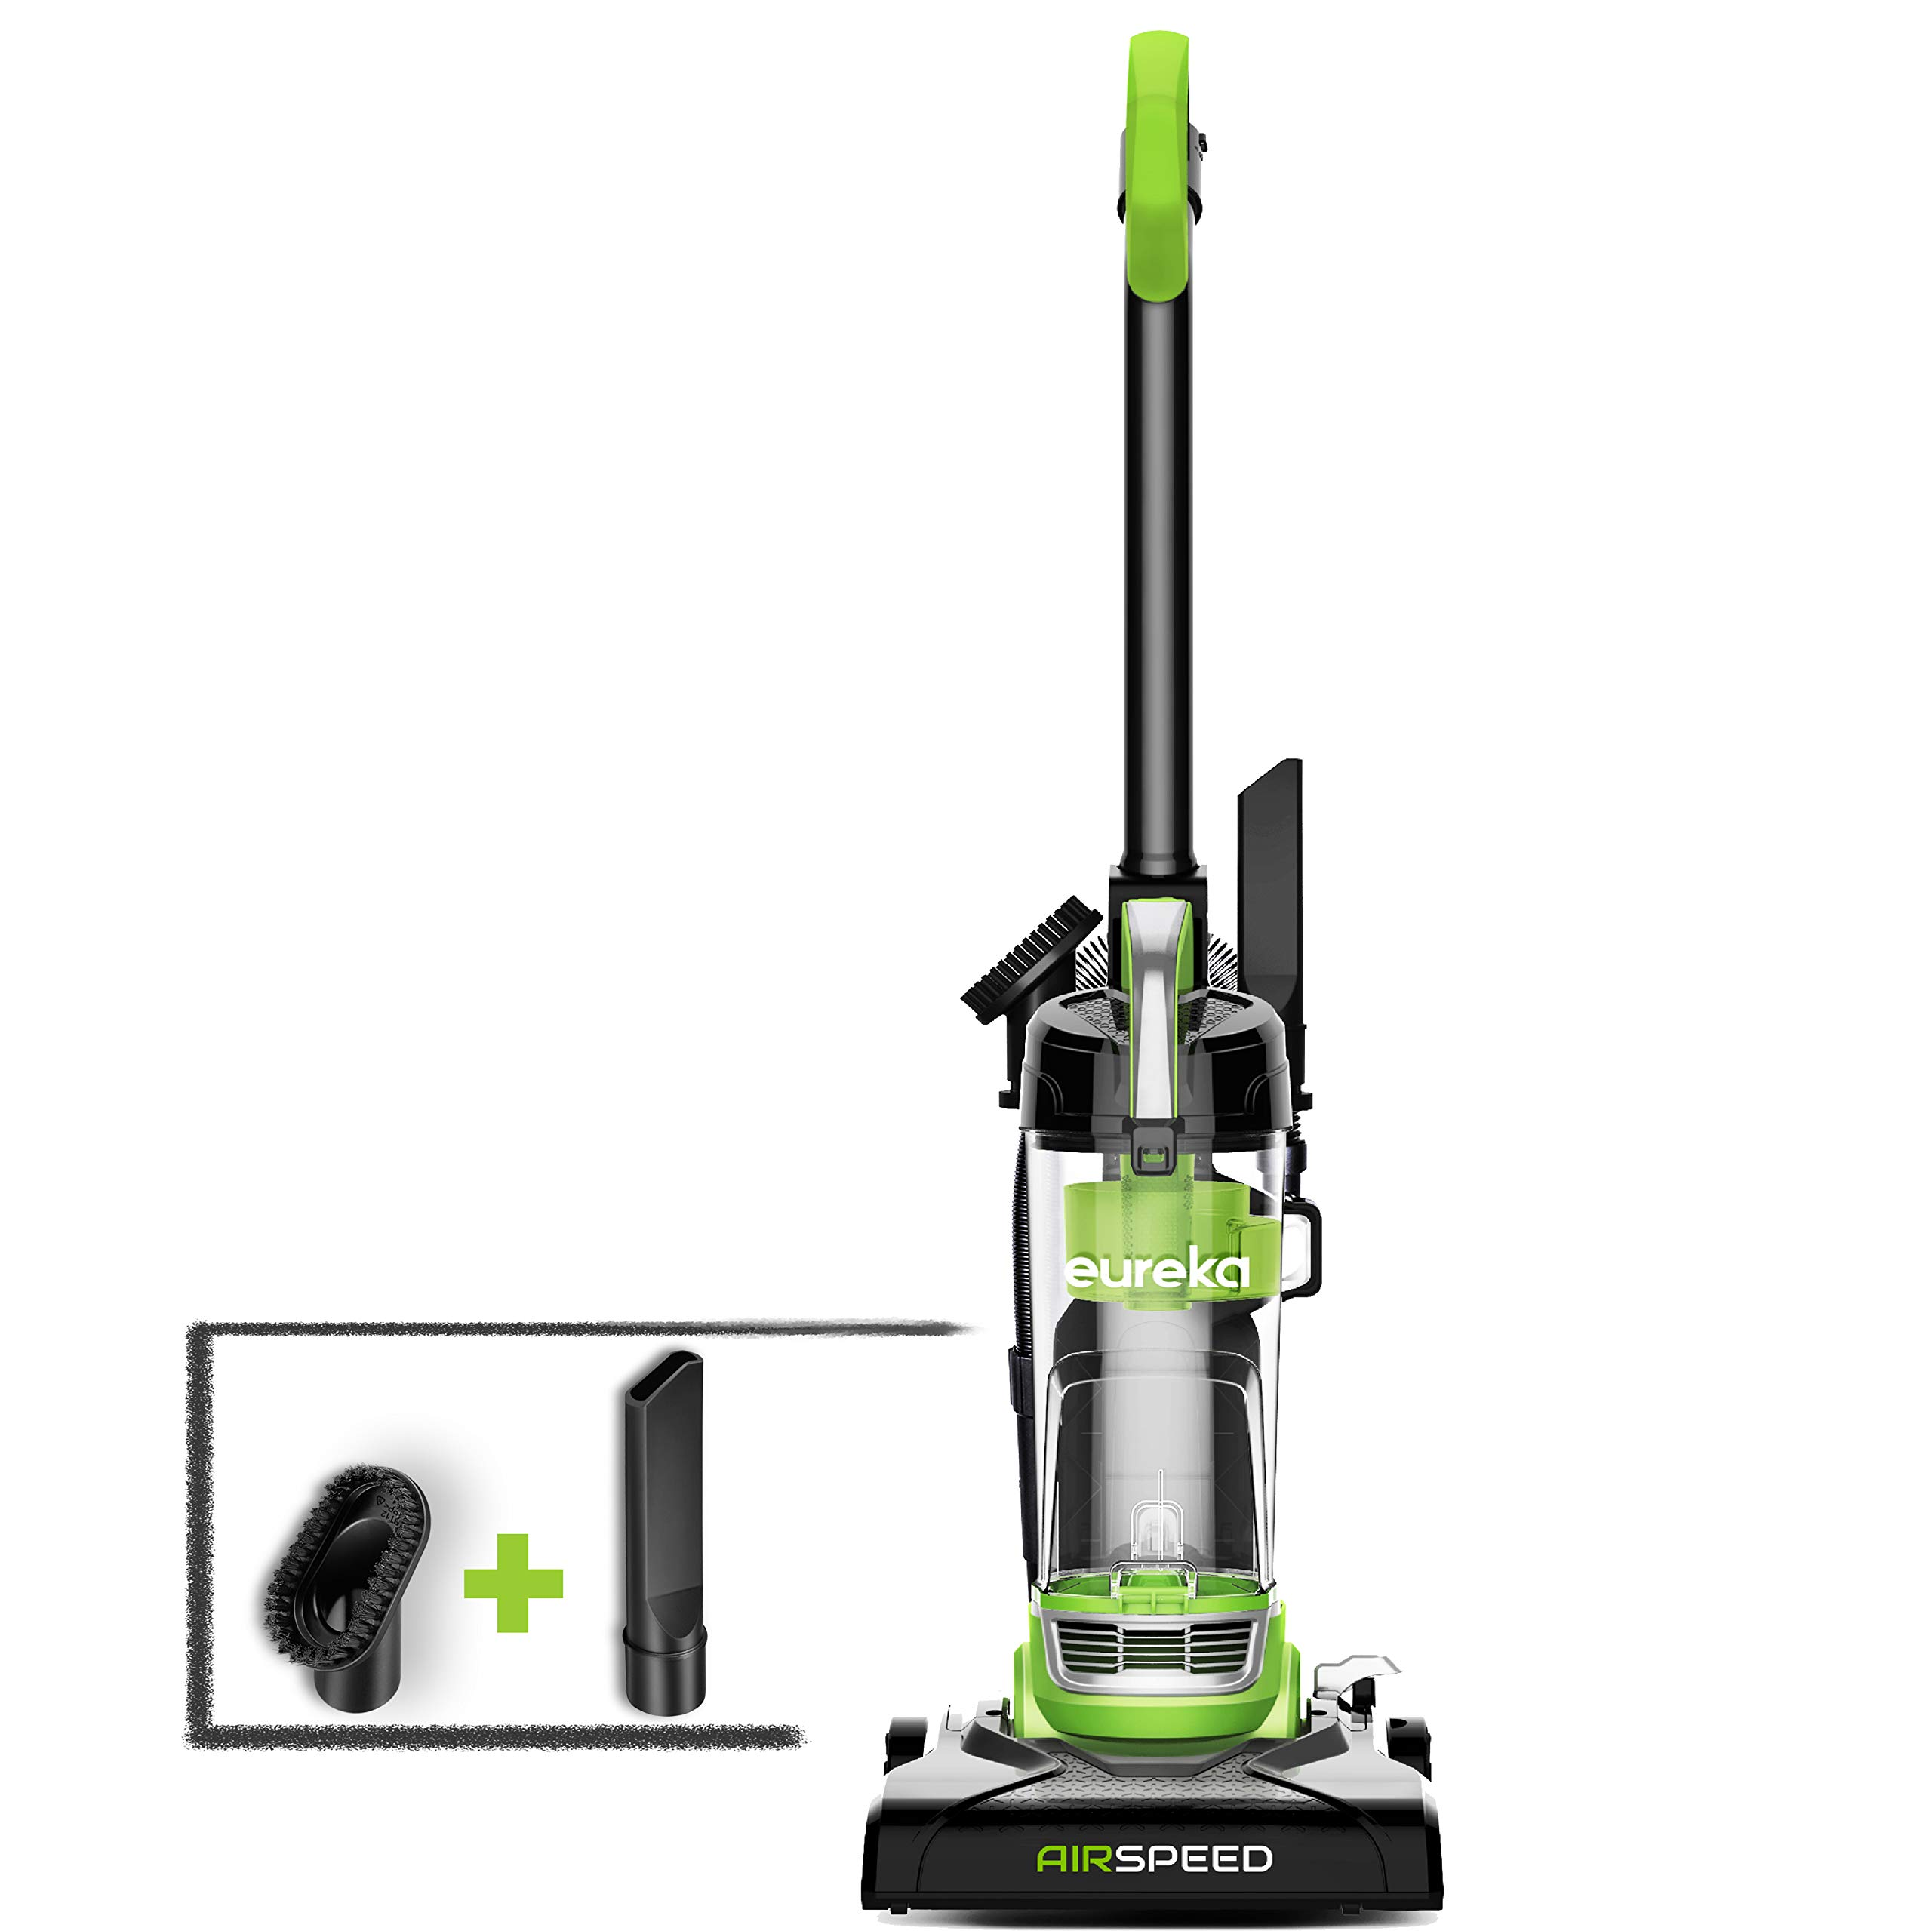 Eureka NEU100 Airspeed Ultra-Lightweight Compact Bagless Upright Vacuum Cleaner, Lime Green by EUREKA